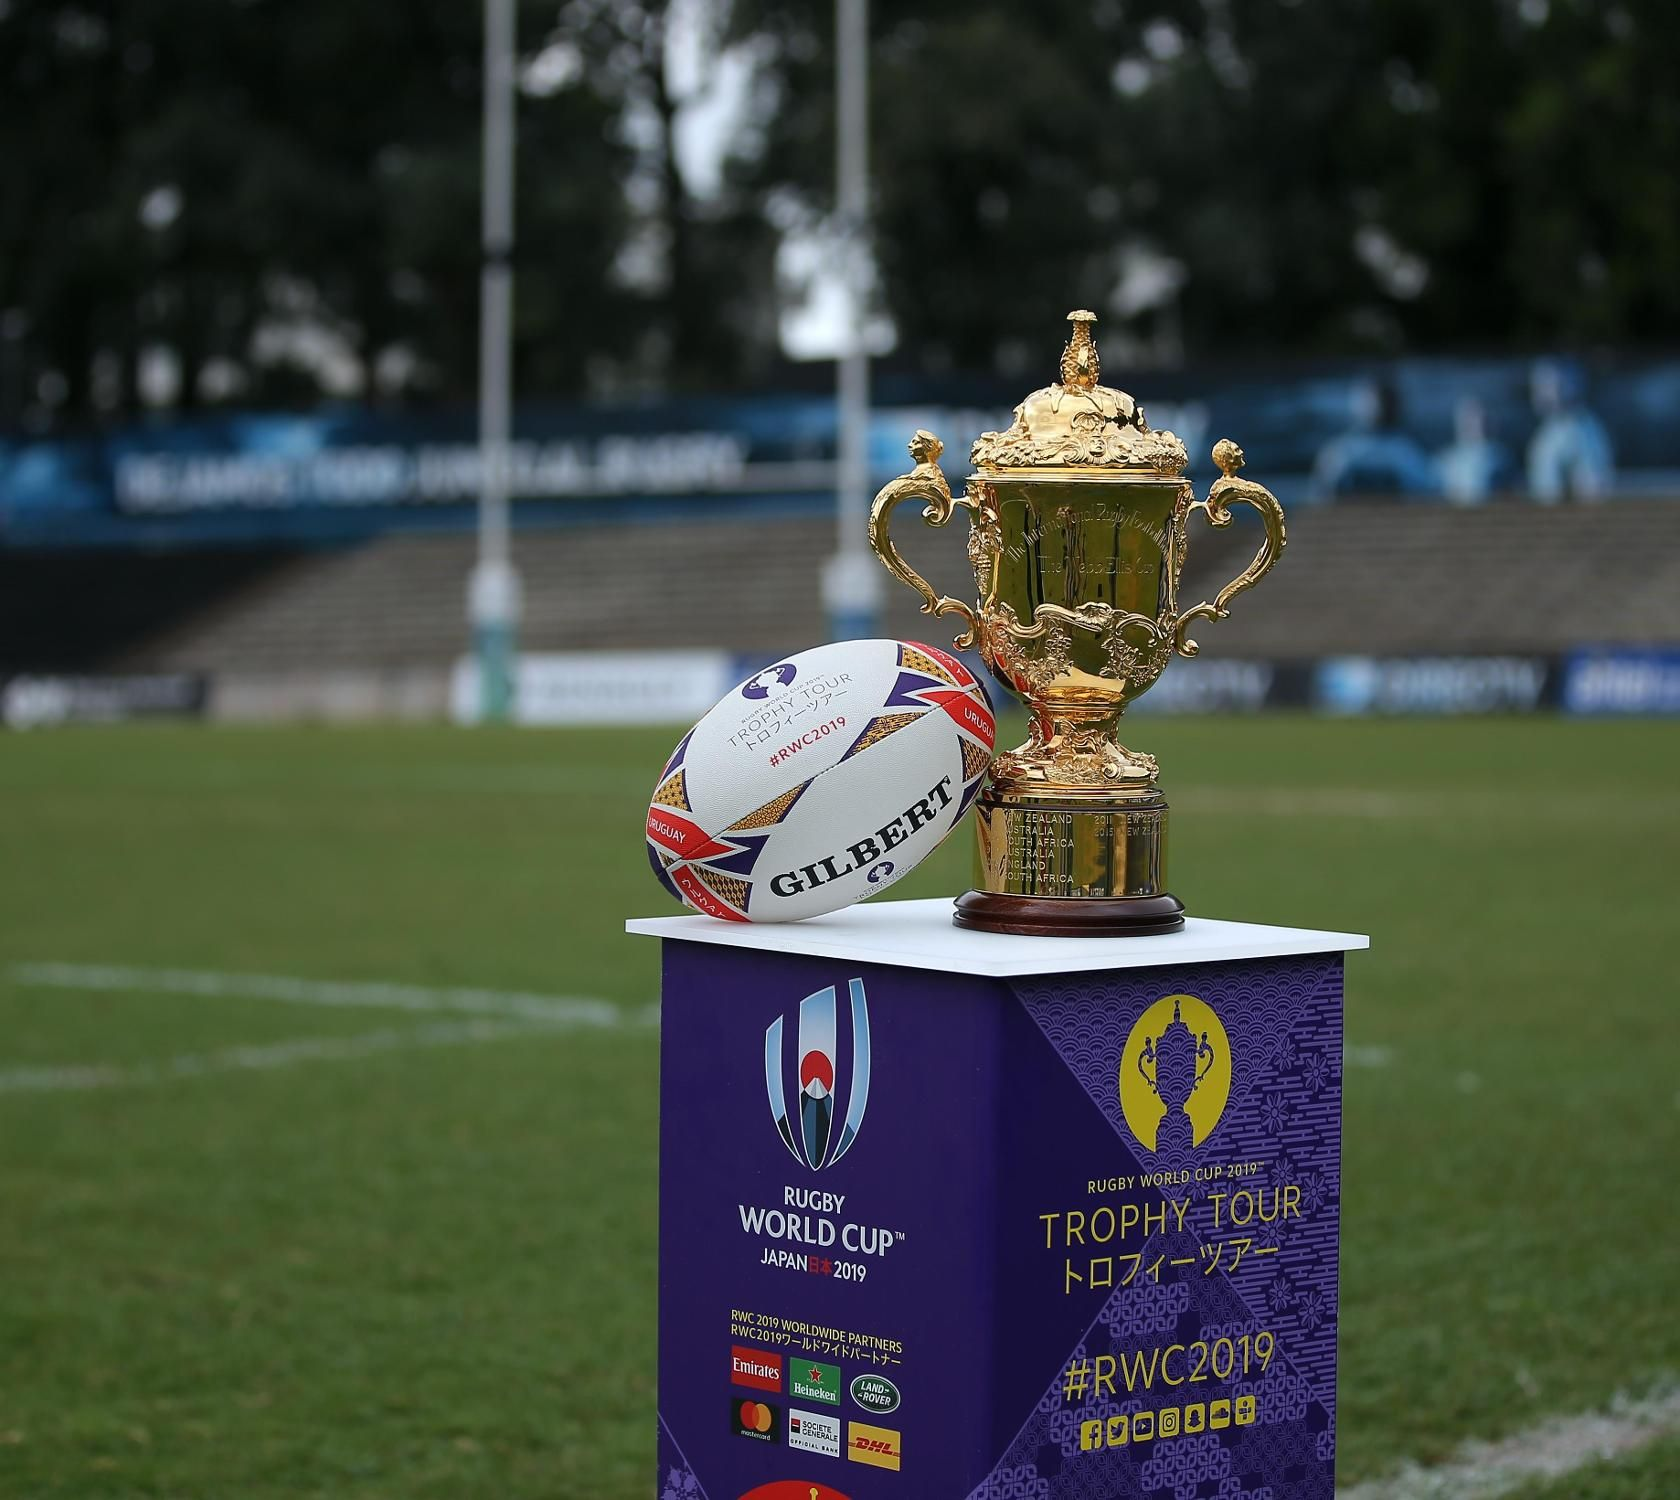 Rugby World Cup 2019 (With images) Rugby world cup